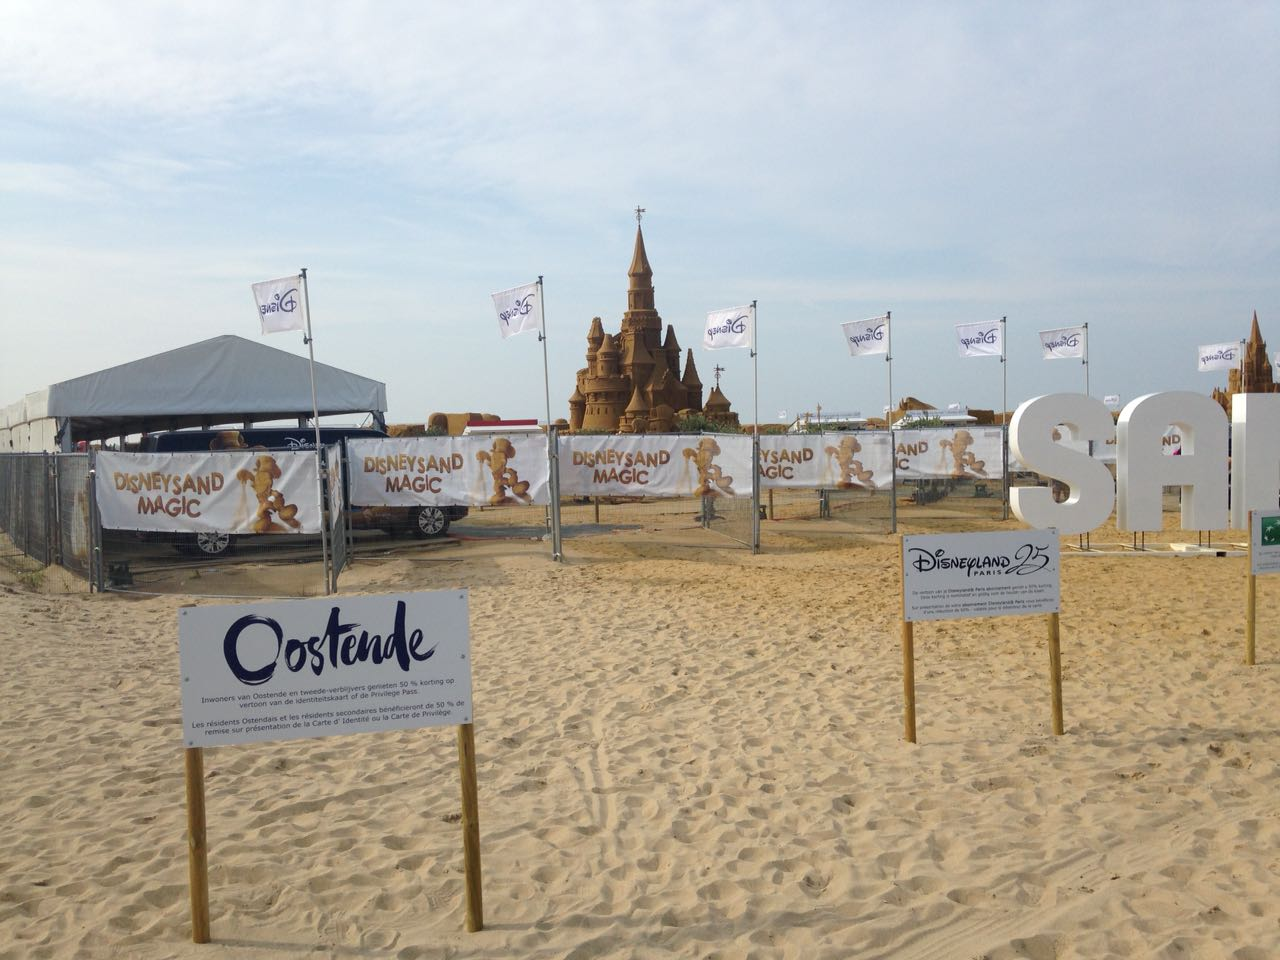 http://www.nordsee-chalet.com/wp-content/uploads/2017/11/IMG-20171031-WA0009.jpg